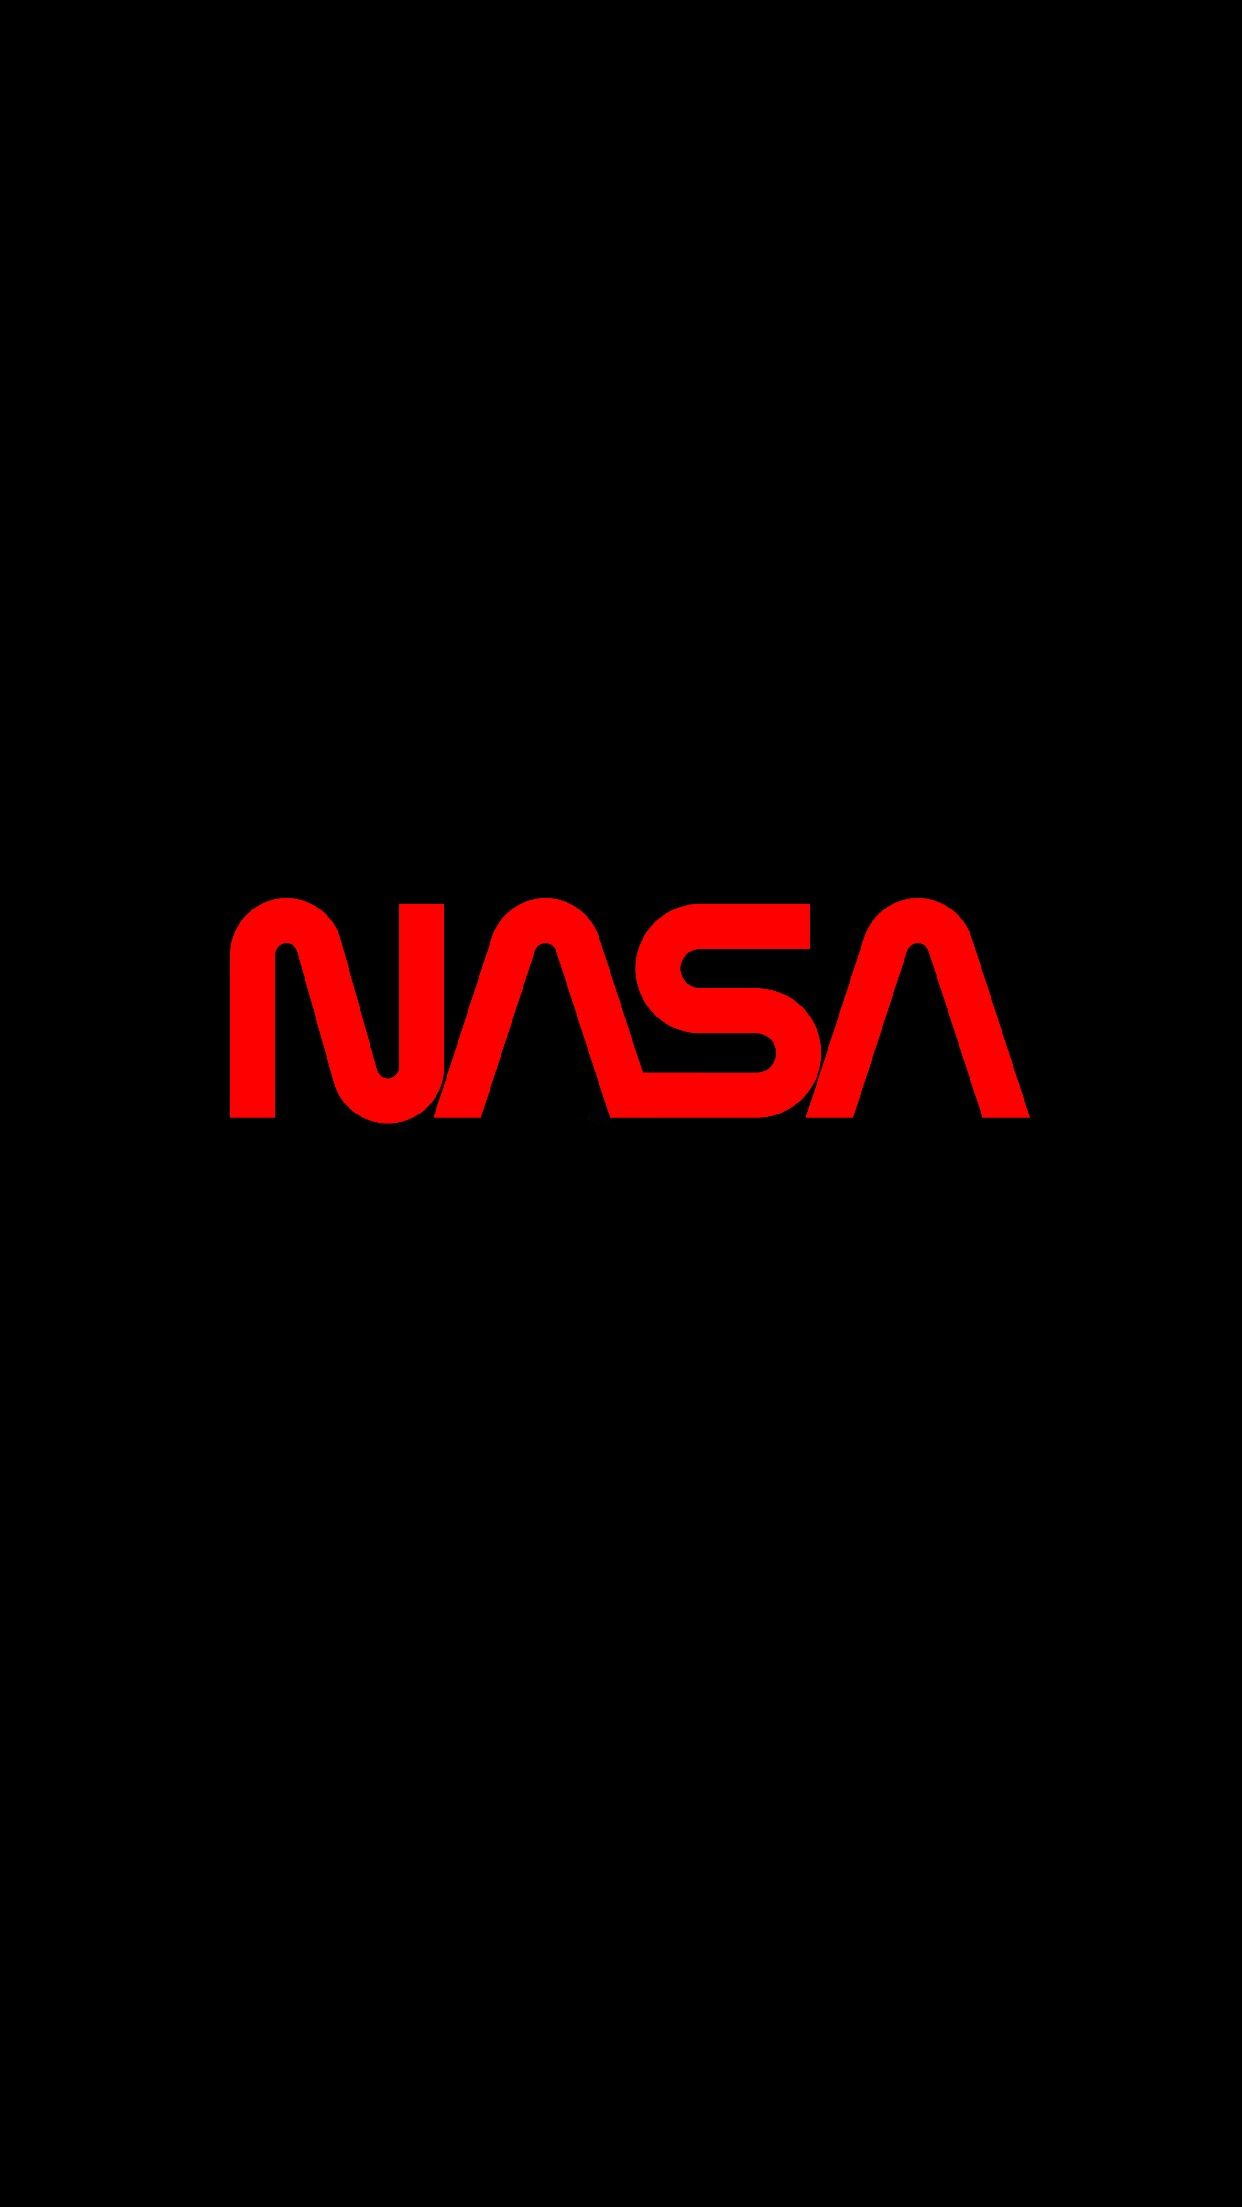 Nasa Nasawallpaper Wallpaperiphone Space Wallpaper Nasa